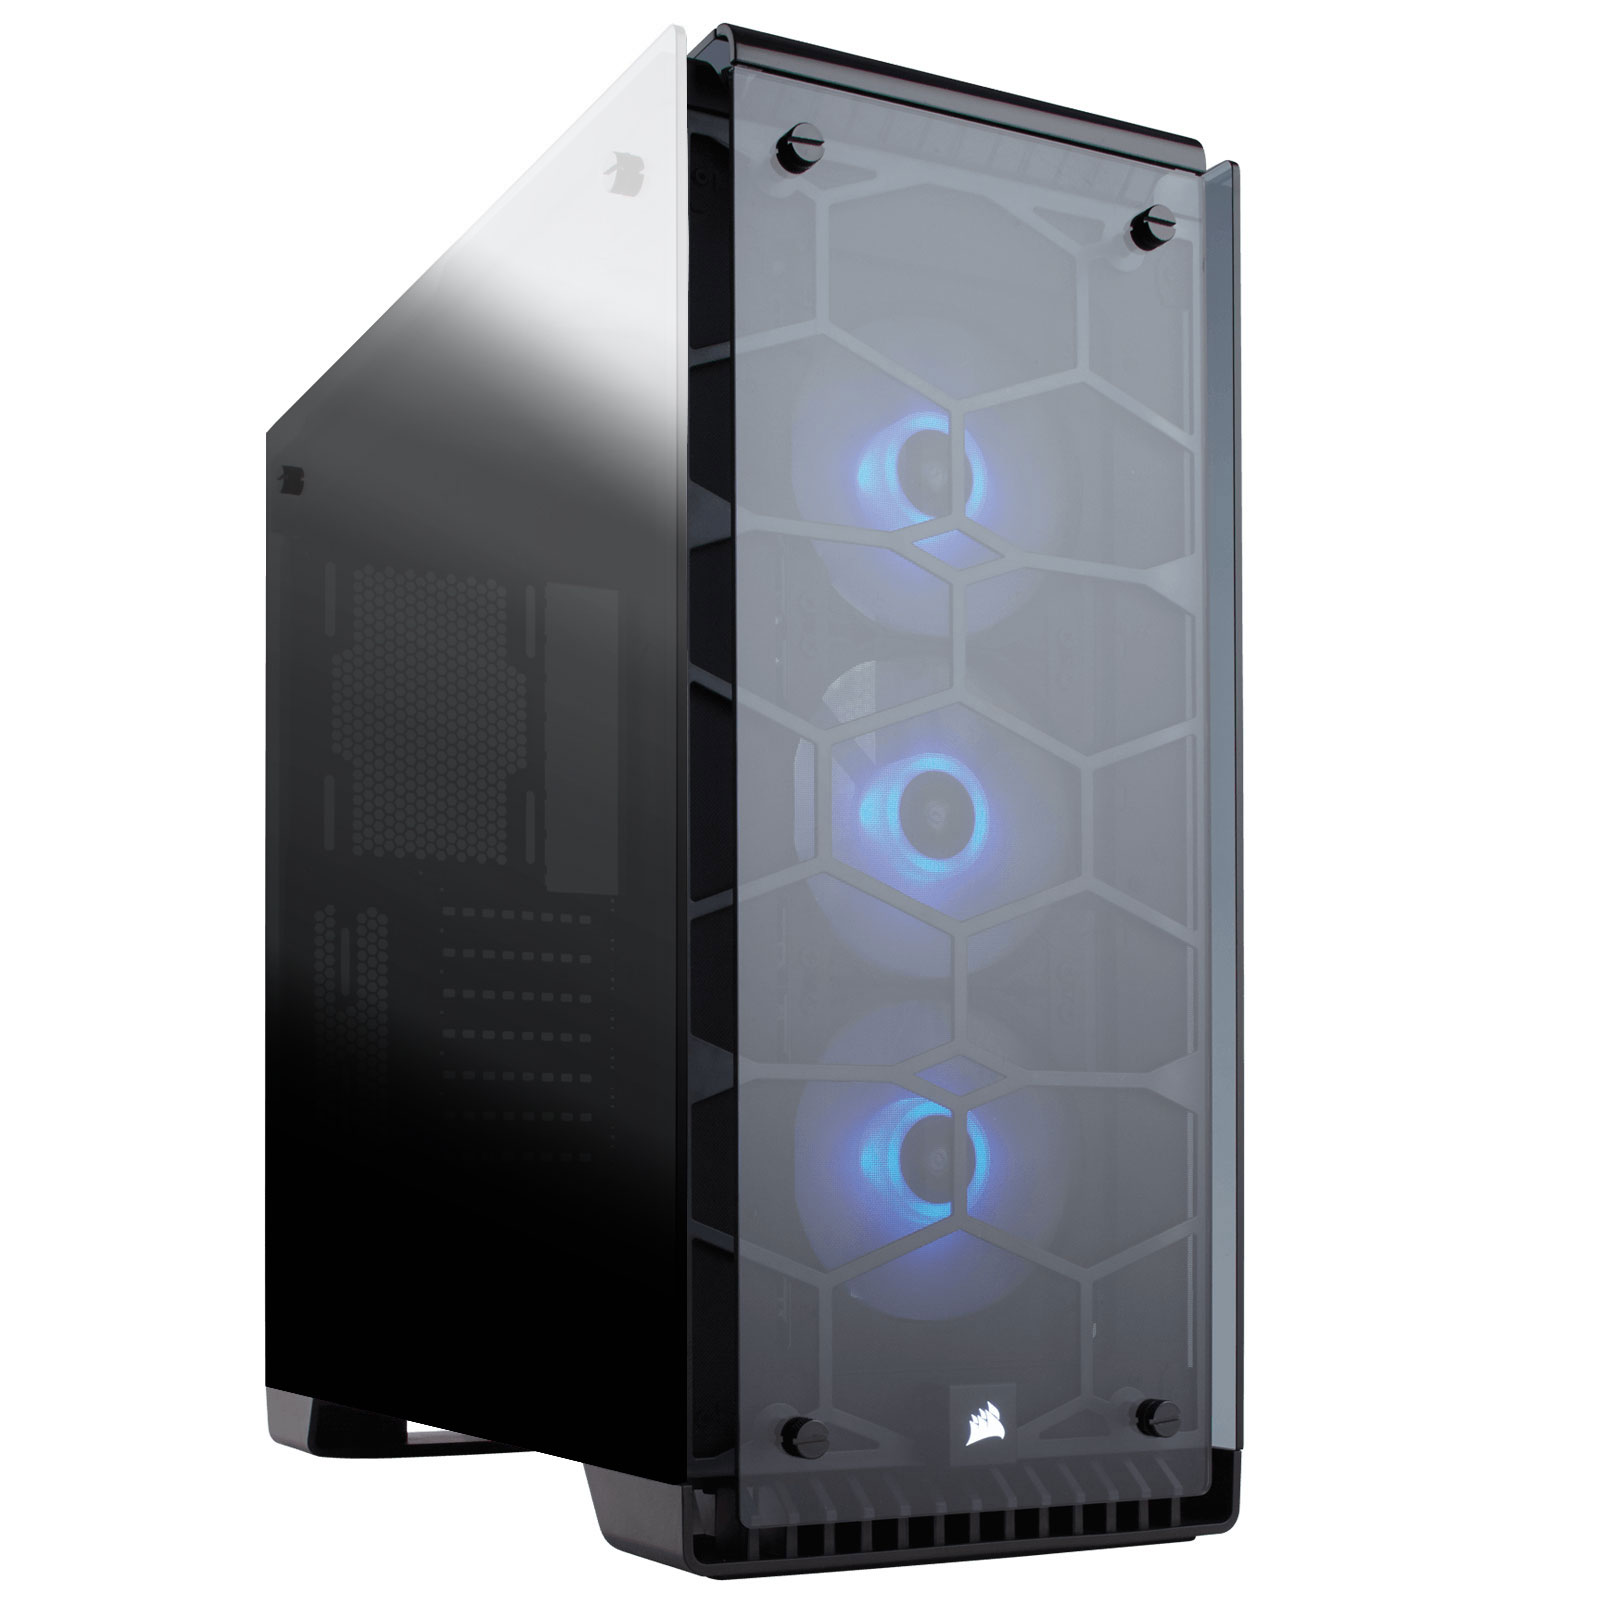 PC de bureau LDLC PC Spirit Intel Core i7-6800K 16 Go DDR4 SSD 120 Go + HDD 3 To NVIDIA GeForce GTX 1060 6 Go (sans OS - monté)